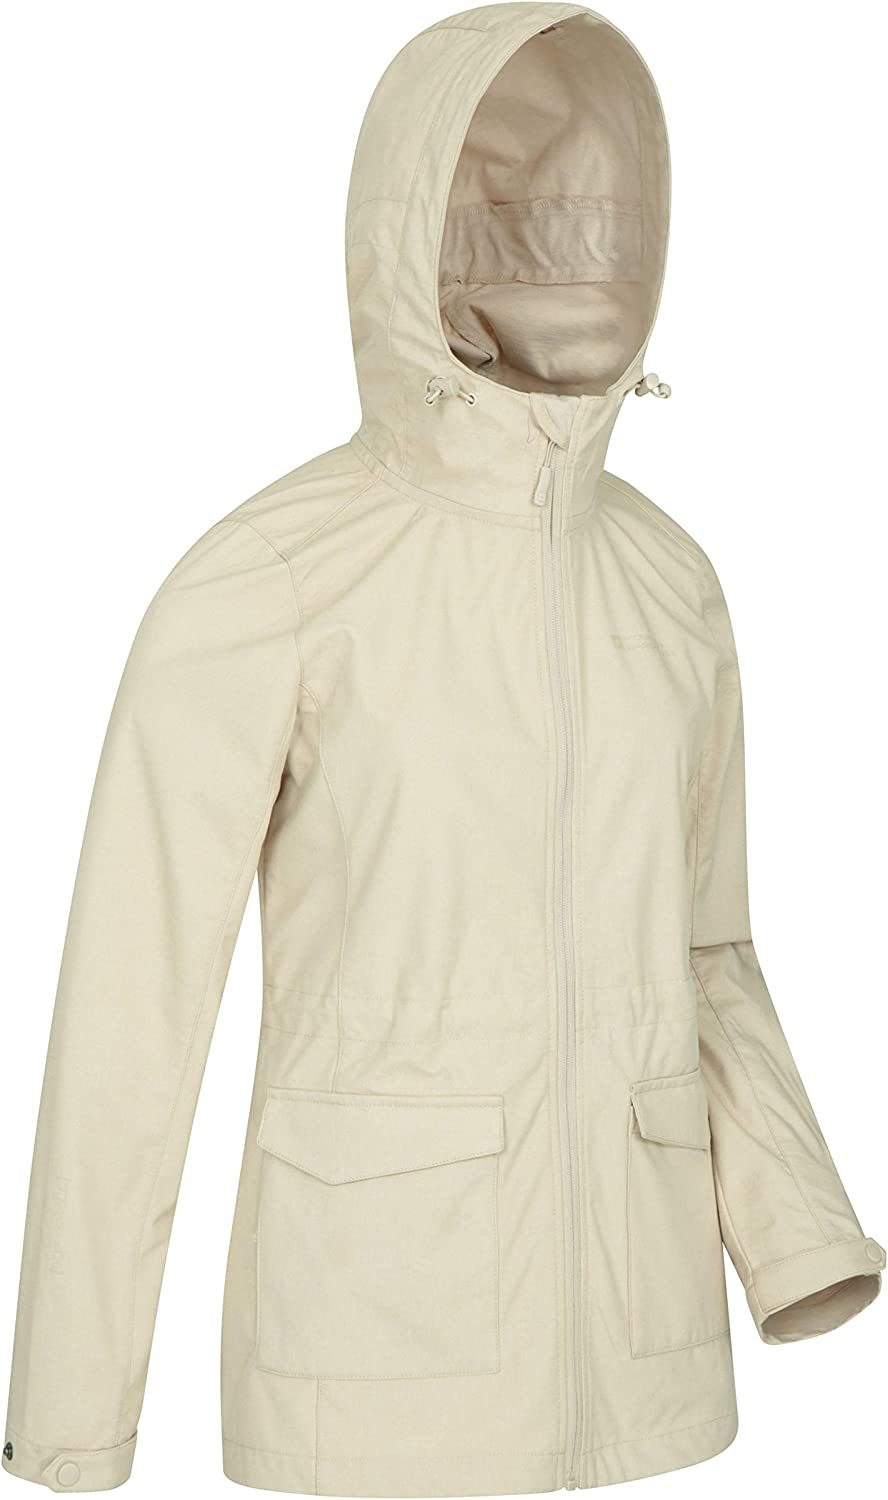 for Winter Adjustable Fit Ladies Soft Shell Front Pockets Water Resistant Rain Jacket Travelling Mountain Warehouse Pines Womens Softshell Jacket Chin Guard